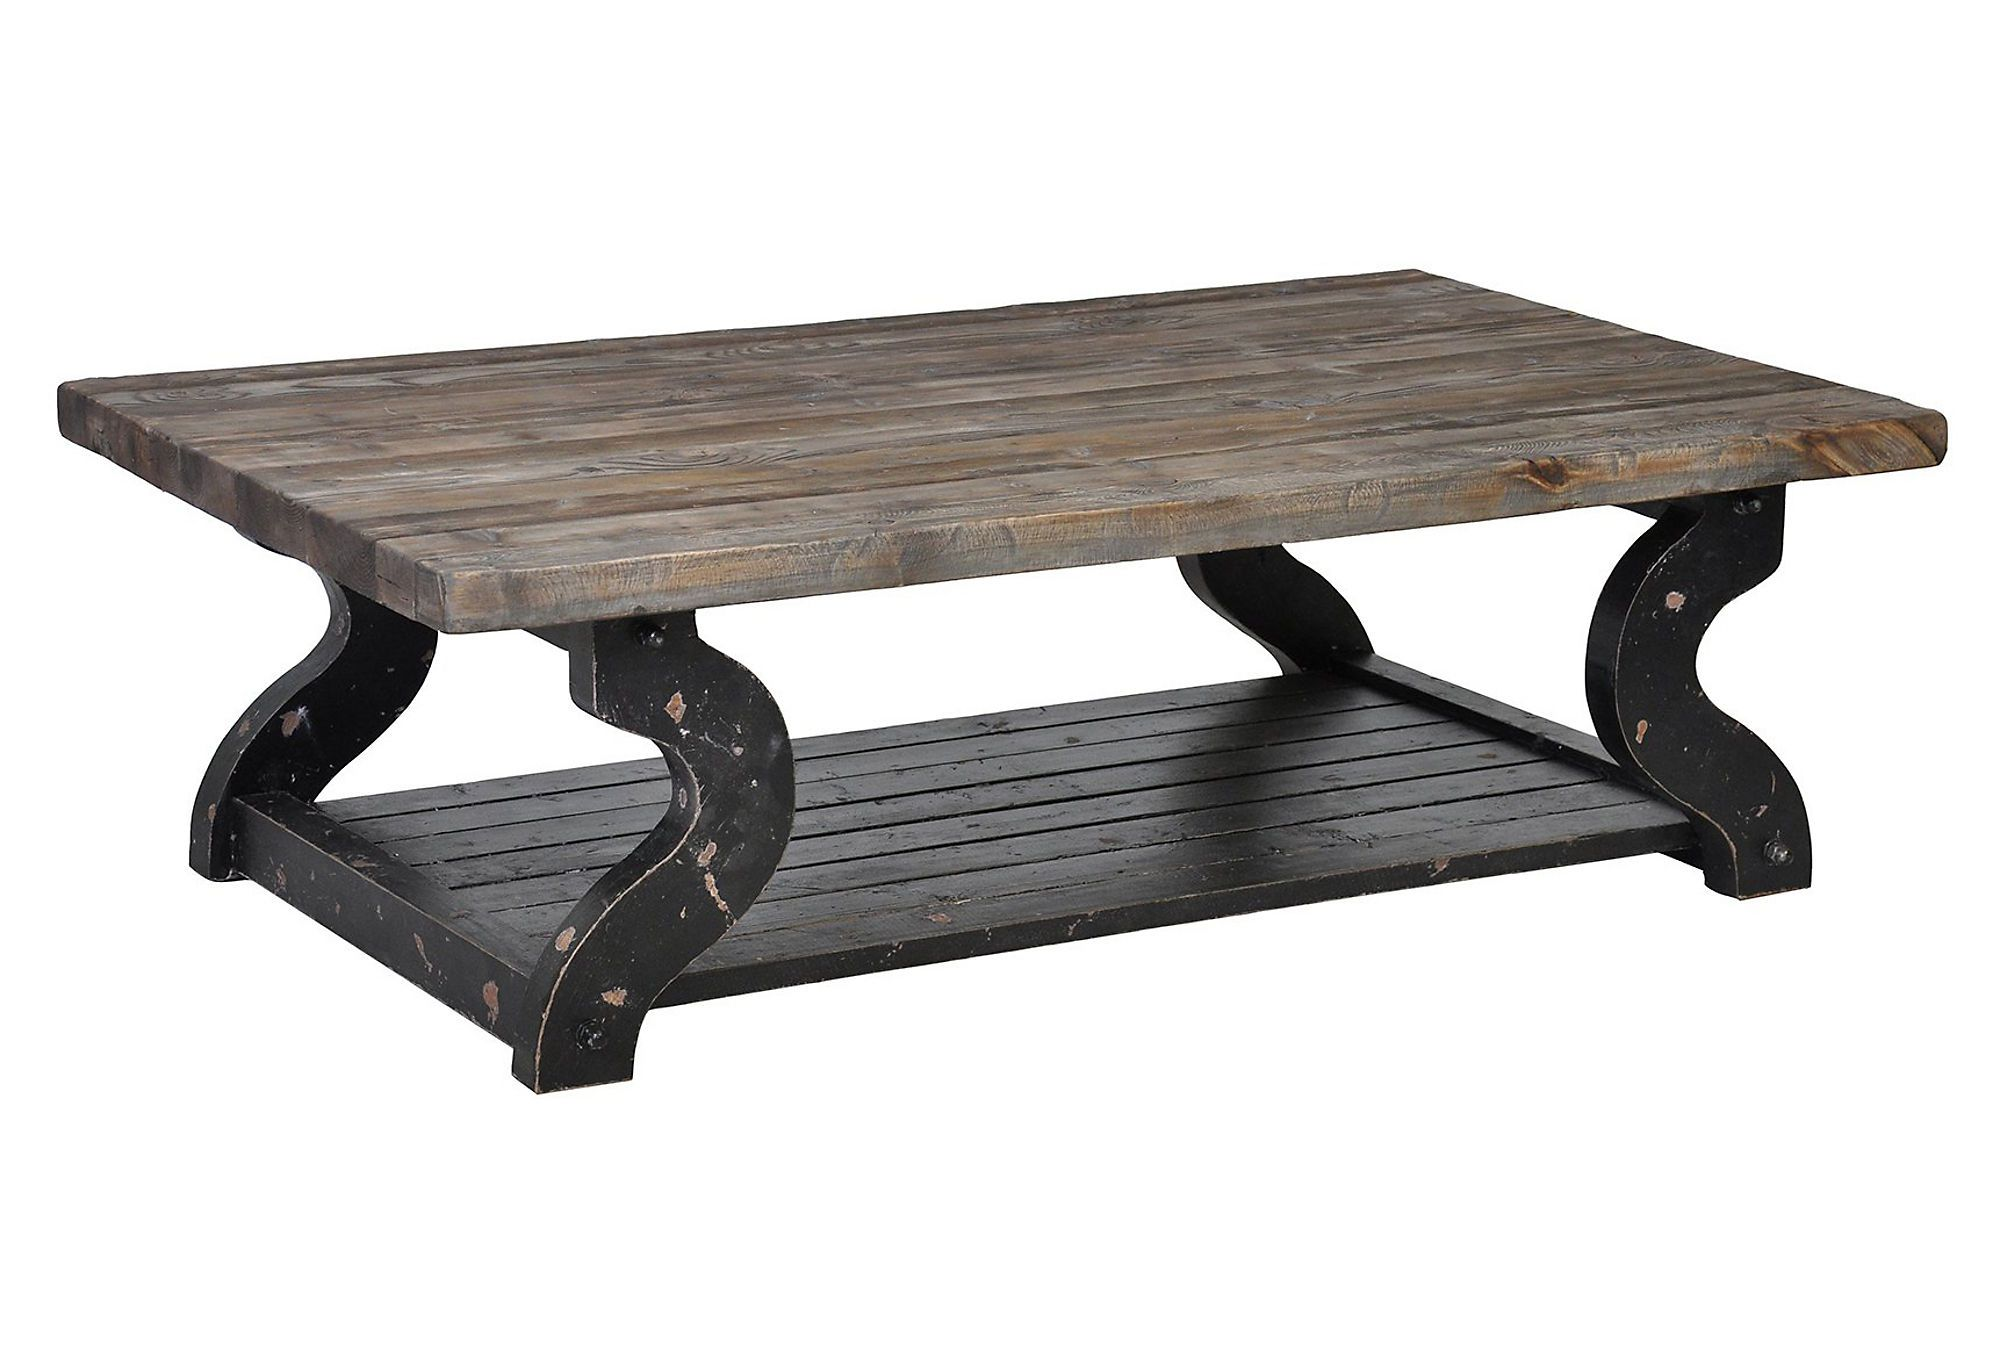 Landon 60 Coffee Table Cocktail Table Coffee Table Base From One Kings Lane Distressed Wood Coffee Table Reclaimed Wood Coffee Table Table [ 1362 x 2000 Pixel ]